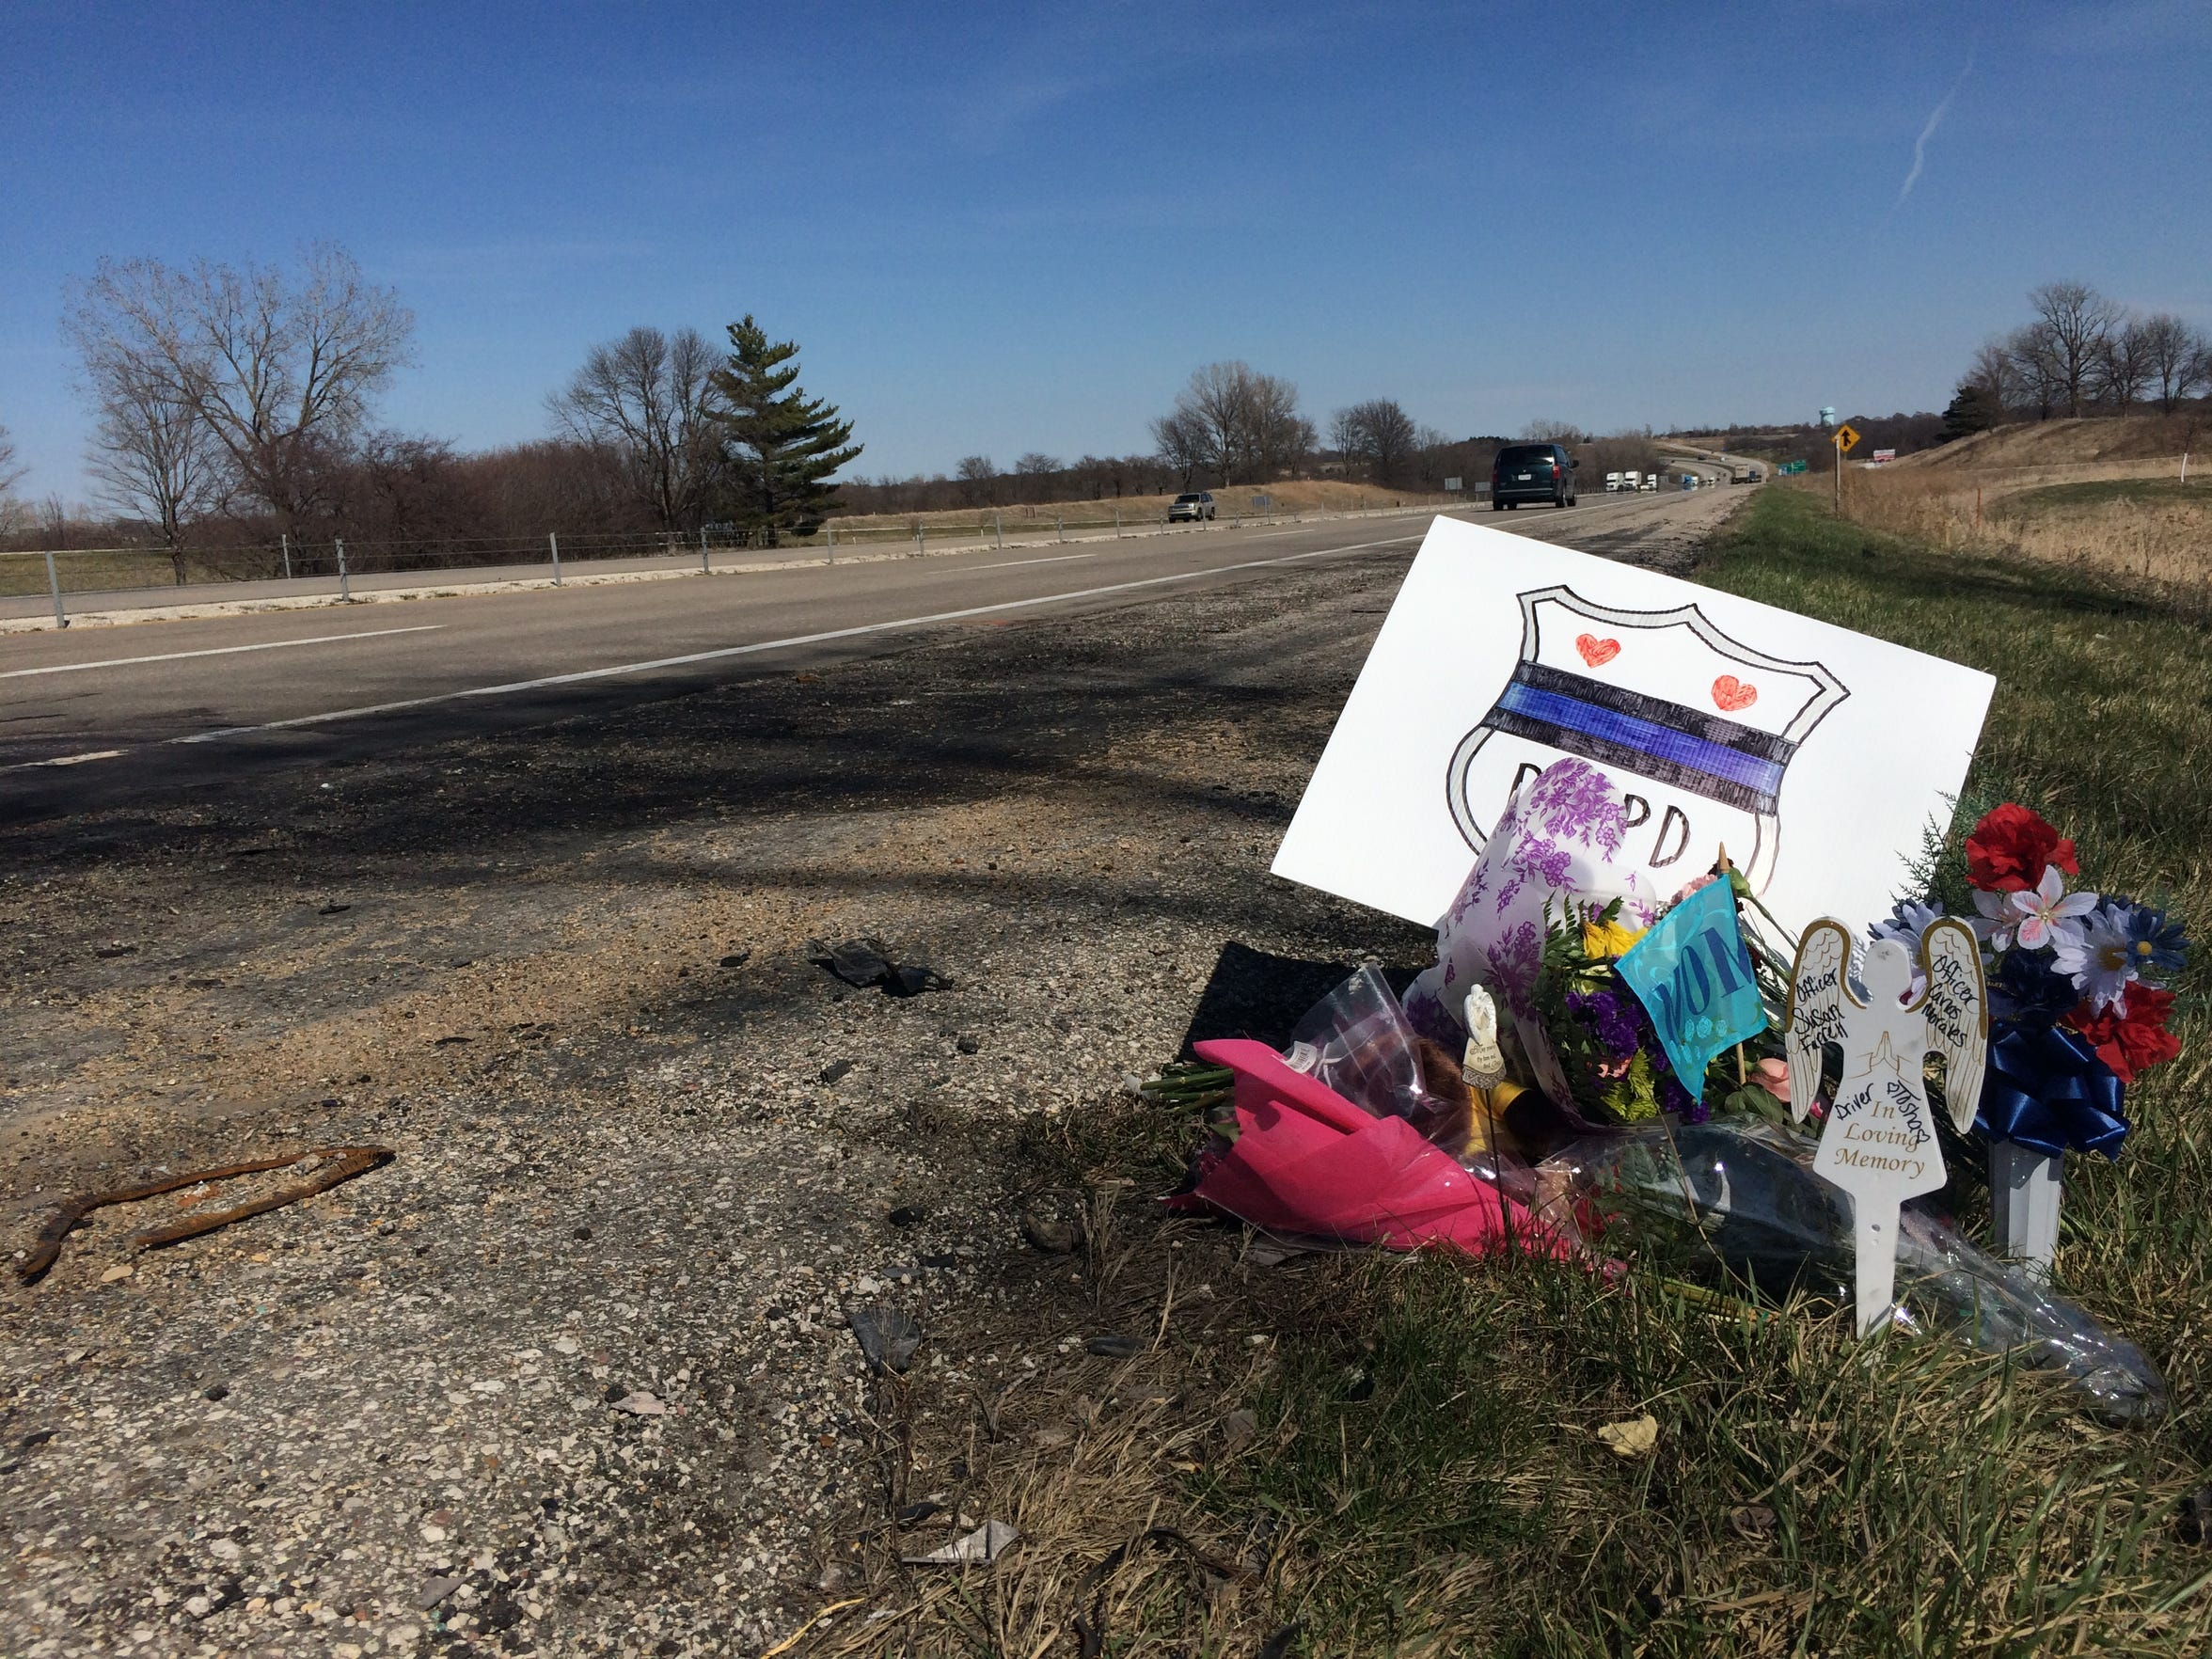 A file photo from March 2016 shows a memorial that marked where a fiery Interstate Highway 80 wreck occurred. Four people were killed in the wreck, including two Des Moines police officers.